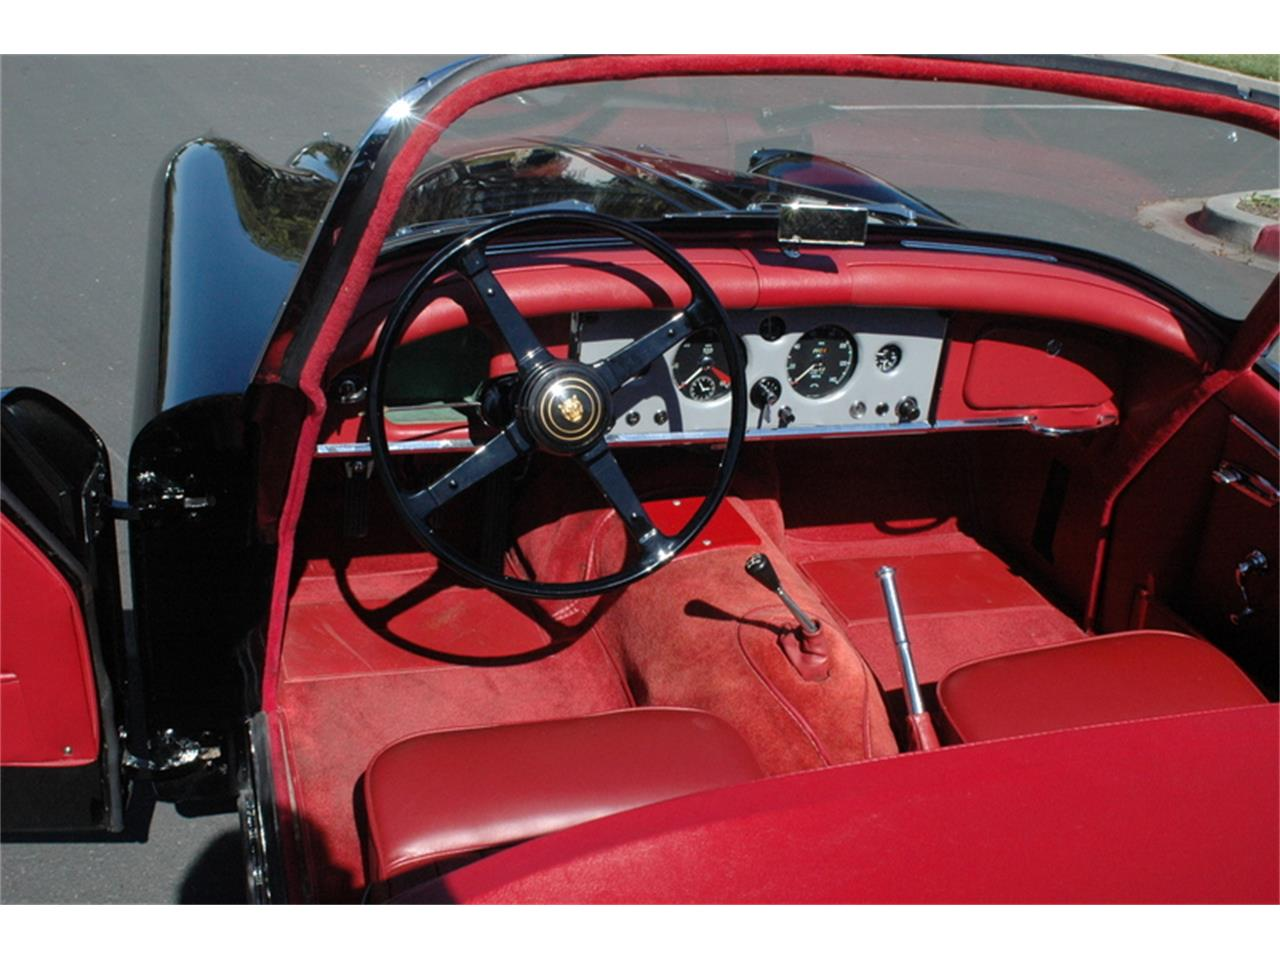 Large Picture of '58 Jaguar XK150 located in California - $189,000.00 - KR1G